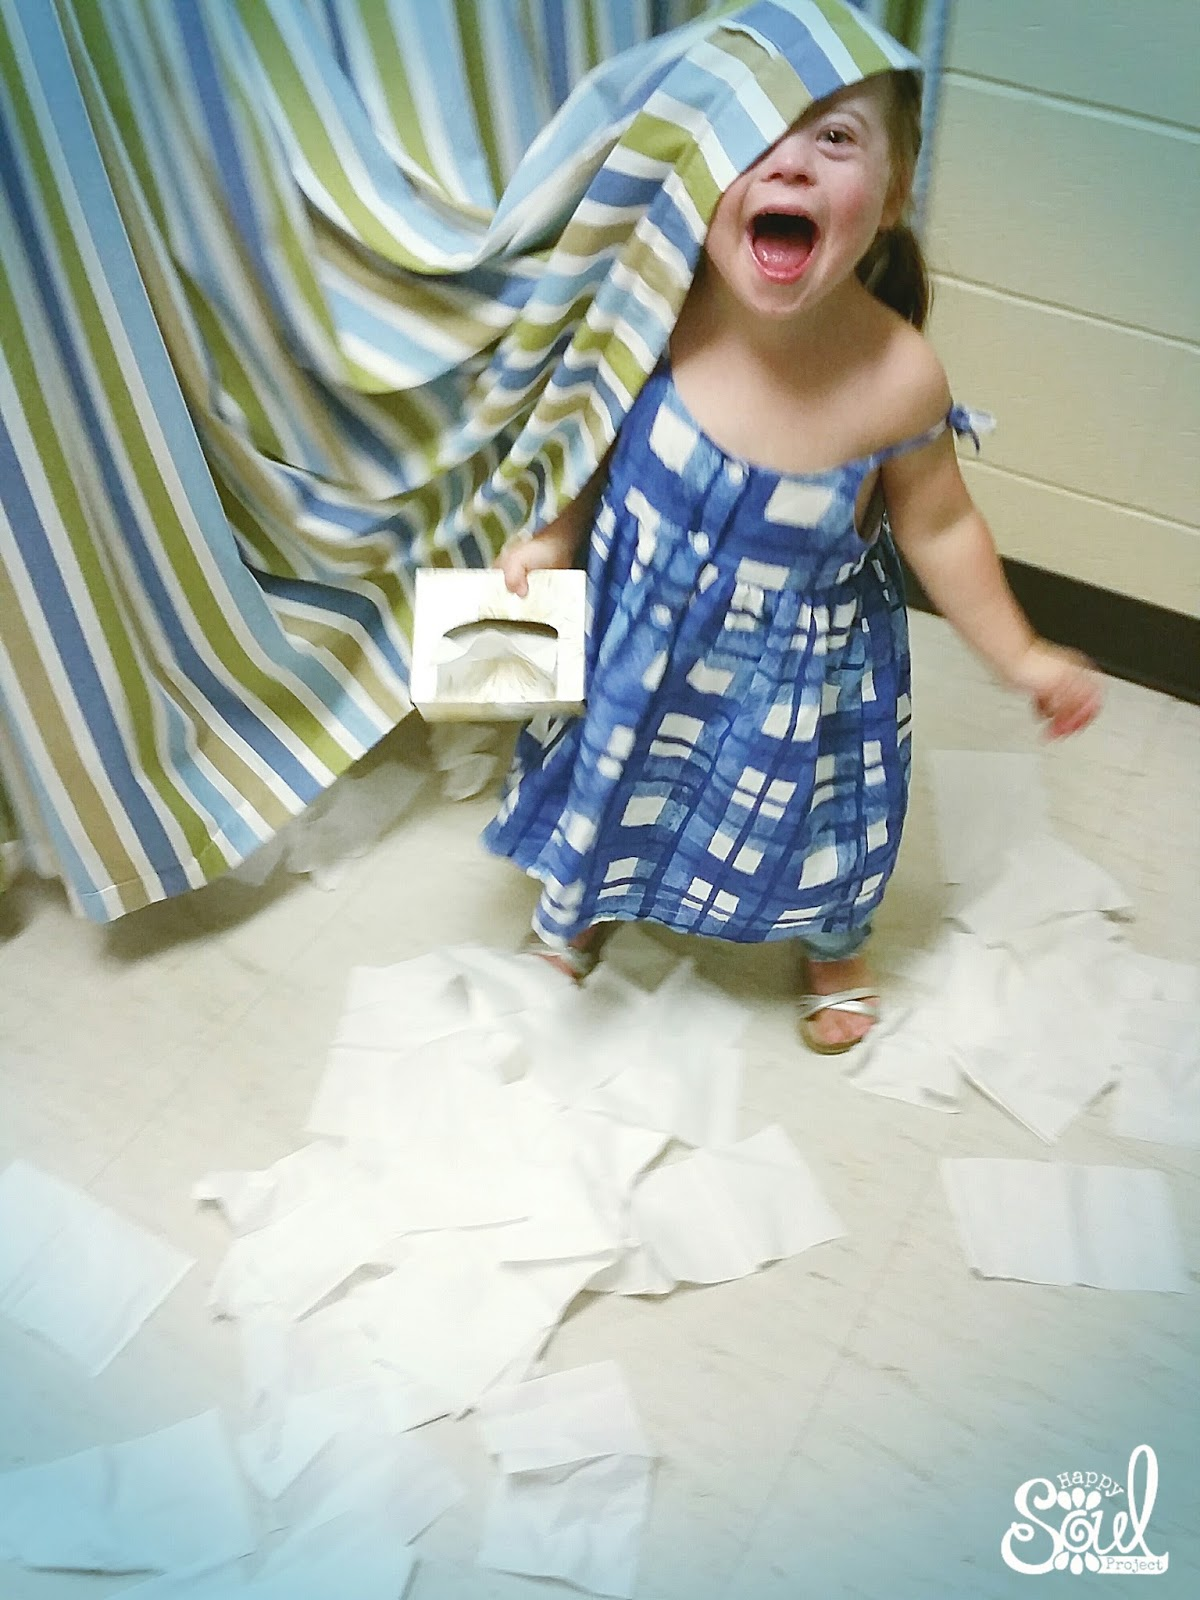 little girl playing with tissues